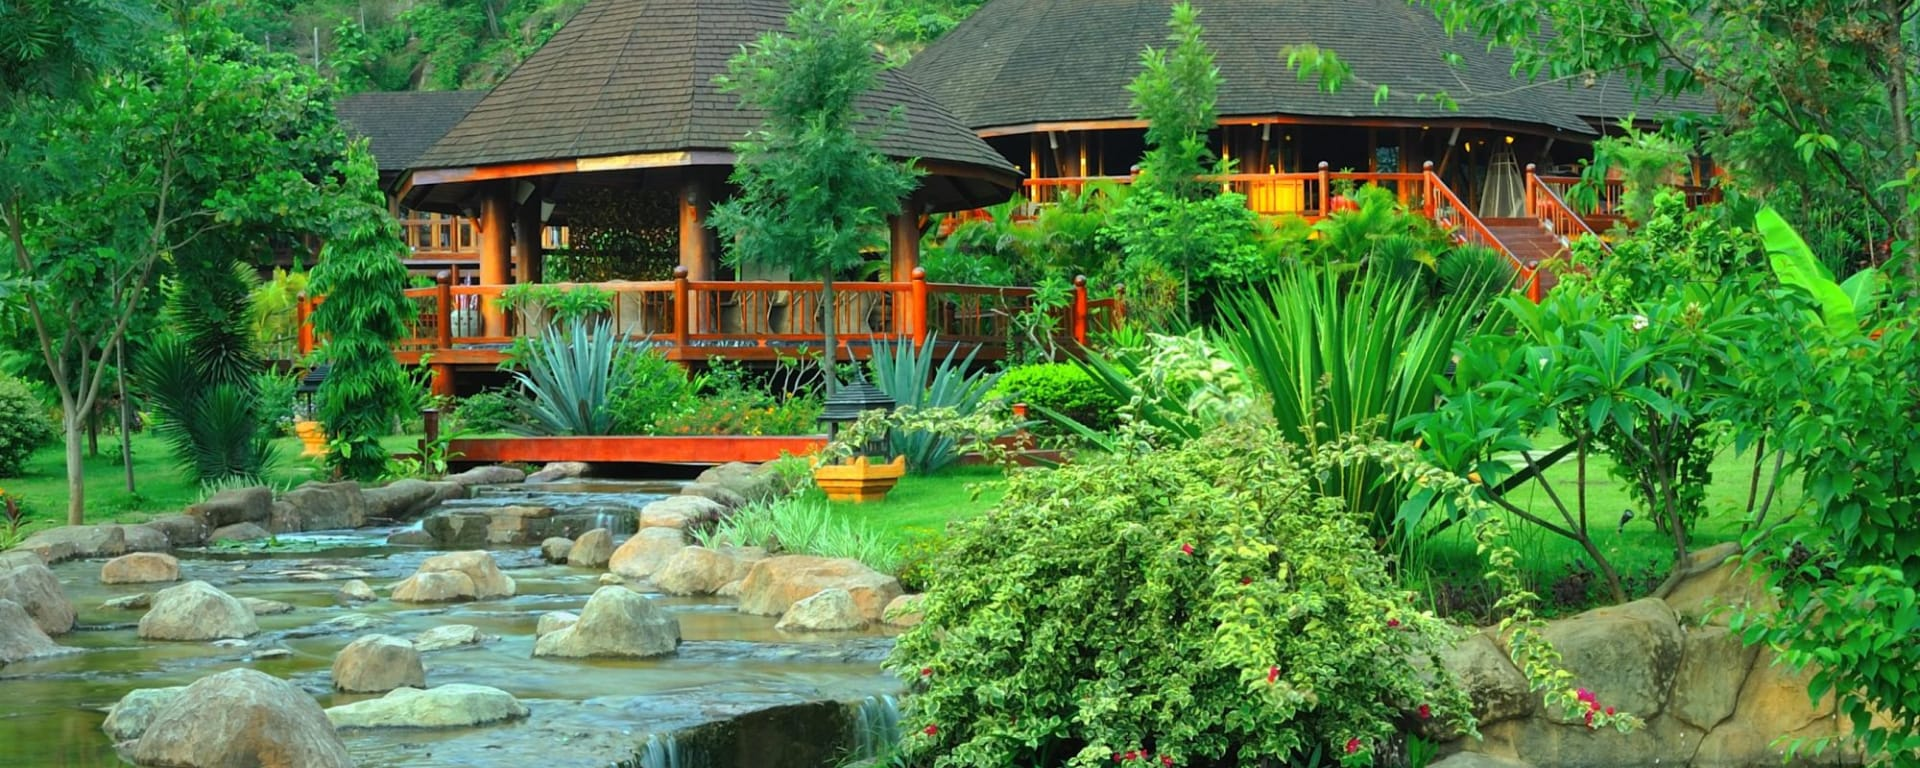 Pristine Lotus Resort in Inle Lake: Front Office and Restaurant